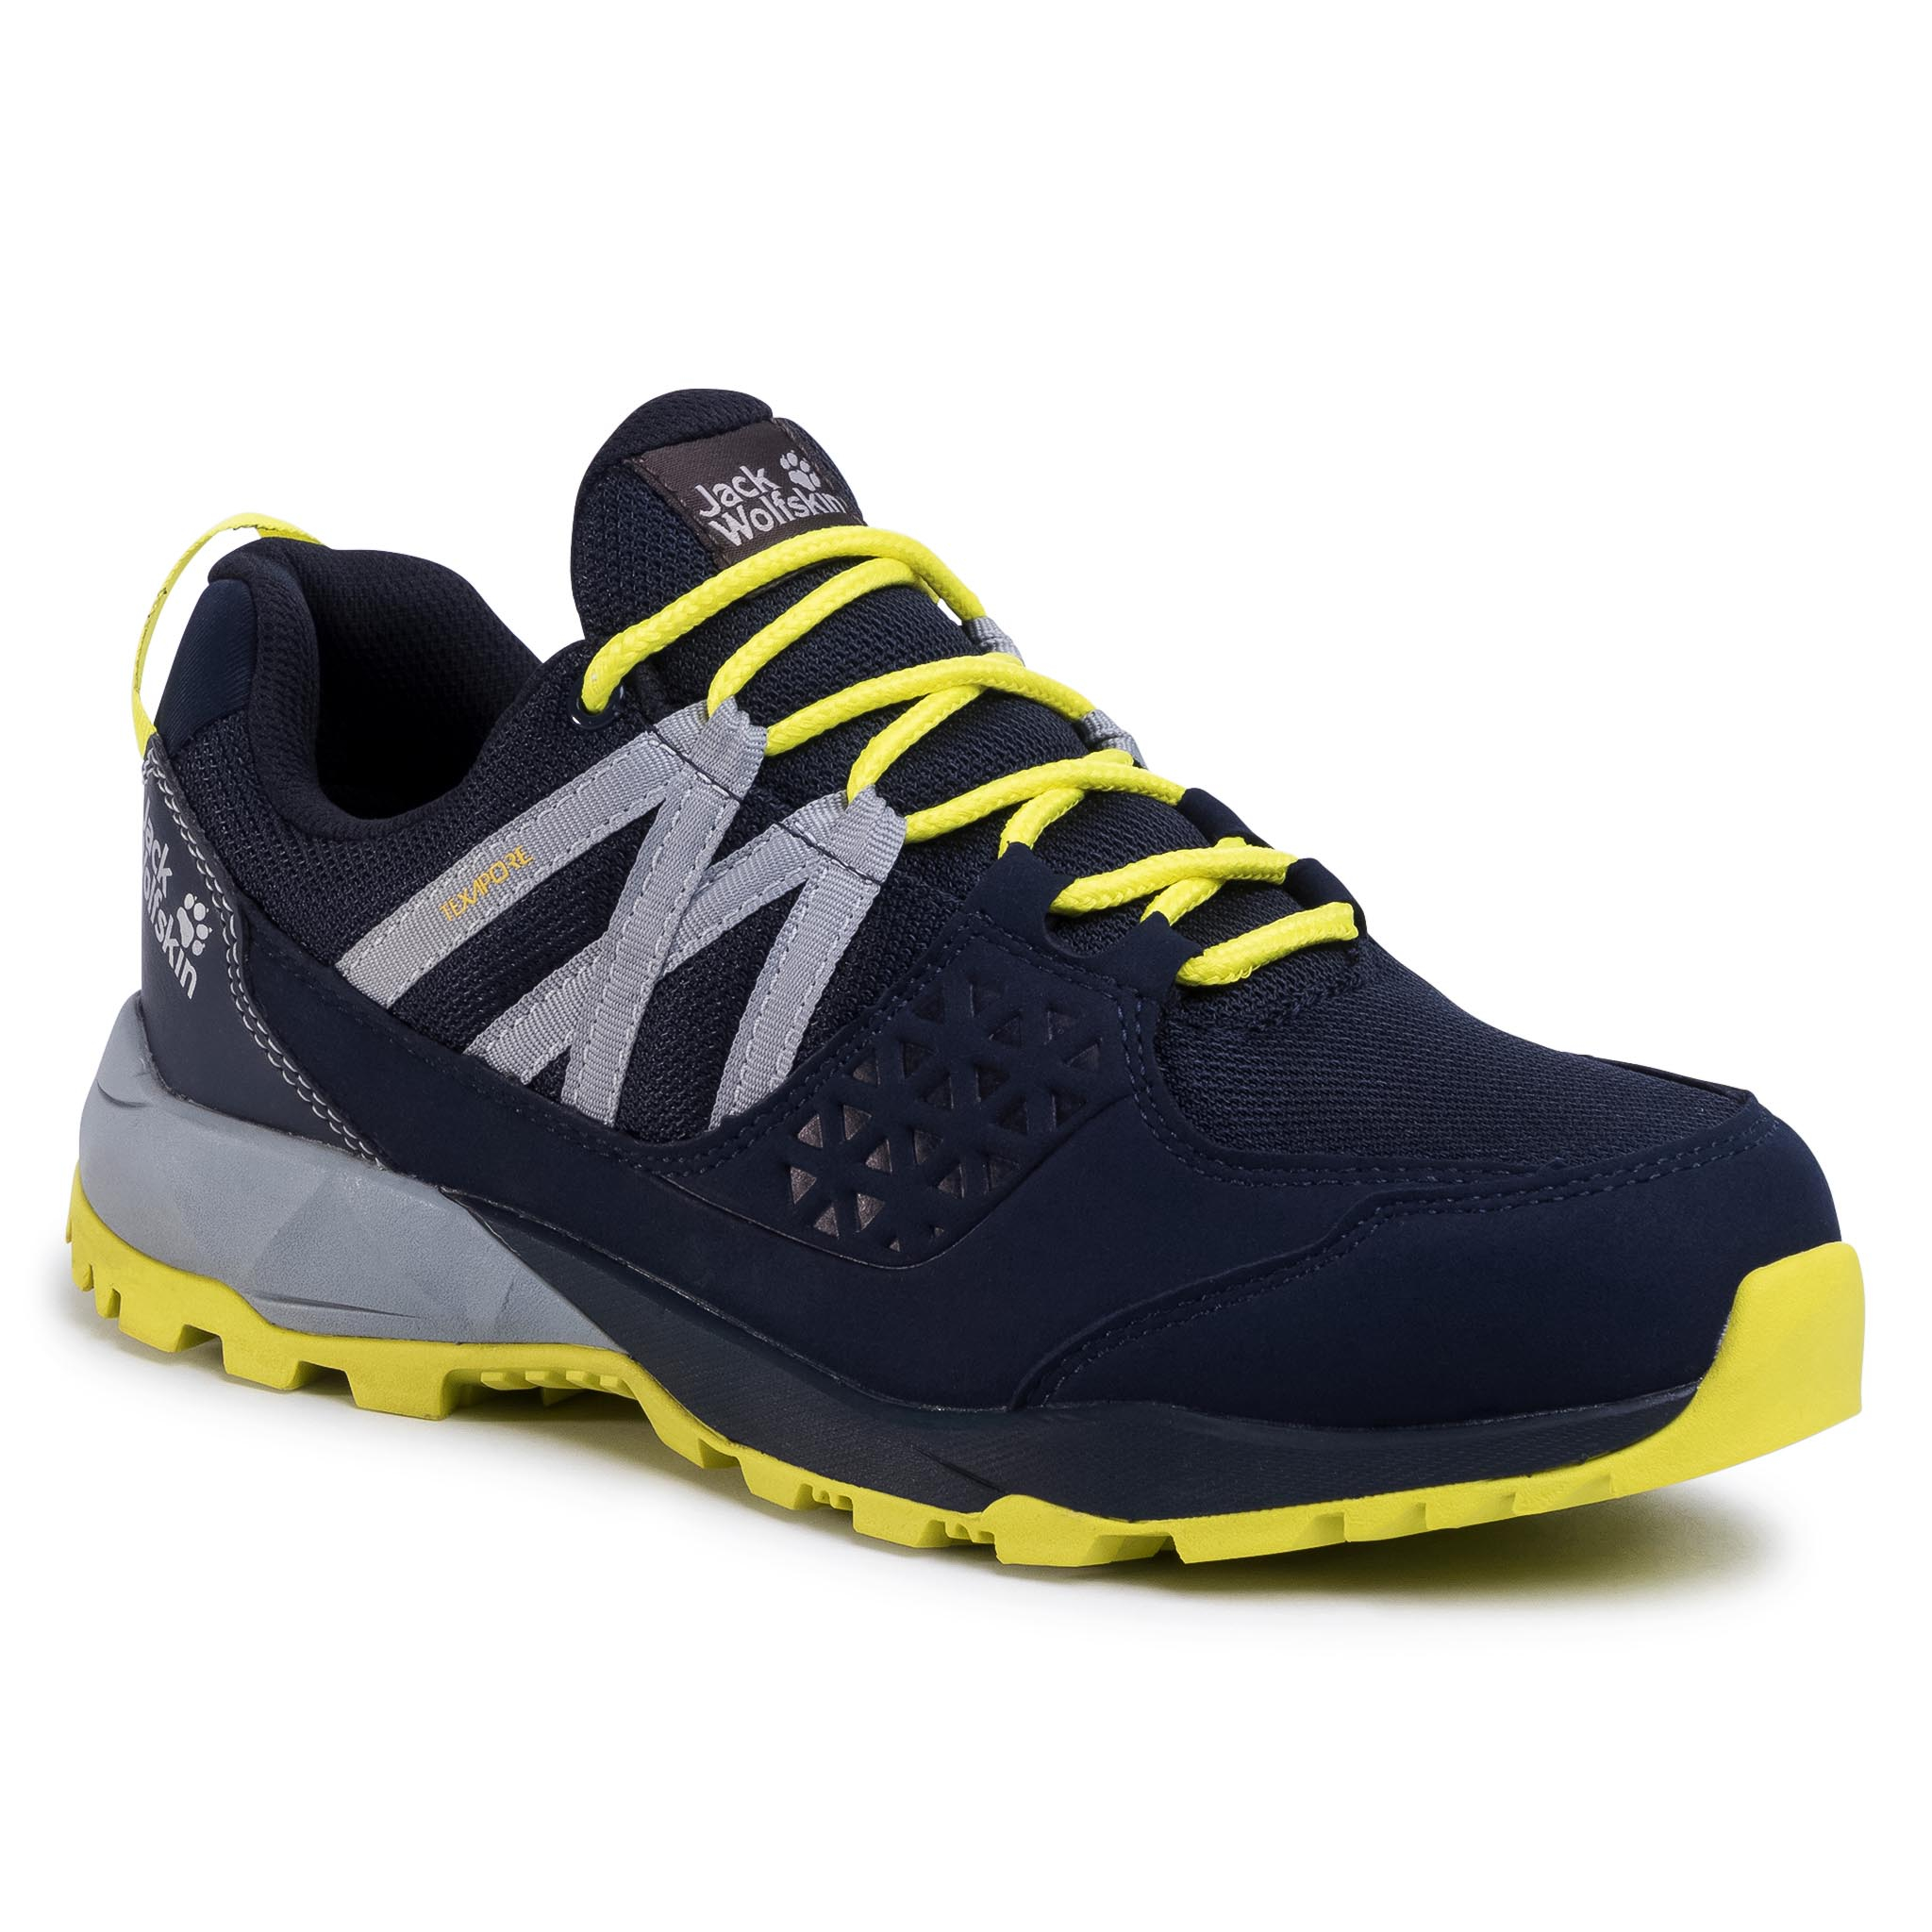 Trekkings Jack Wolfskin - Cascade Hike Texapore Low M 4035491 Dark Blue/Lime imagine epantofi.ro 2021